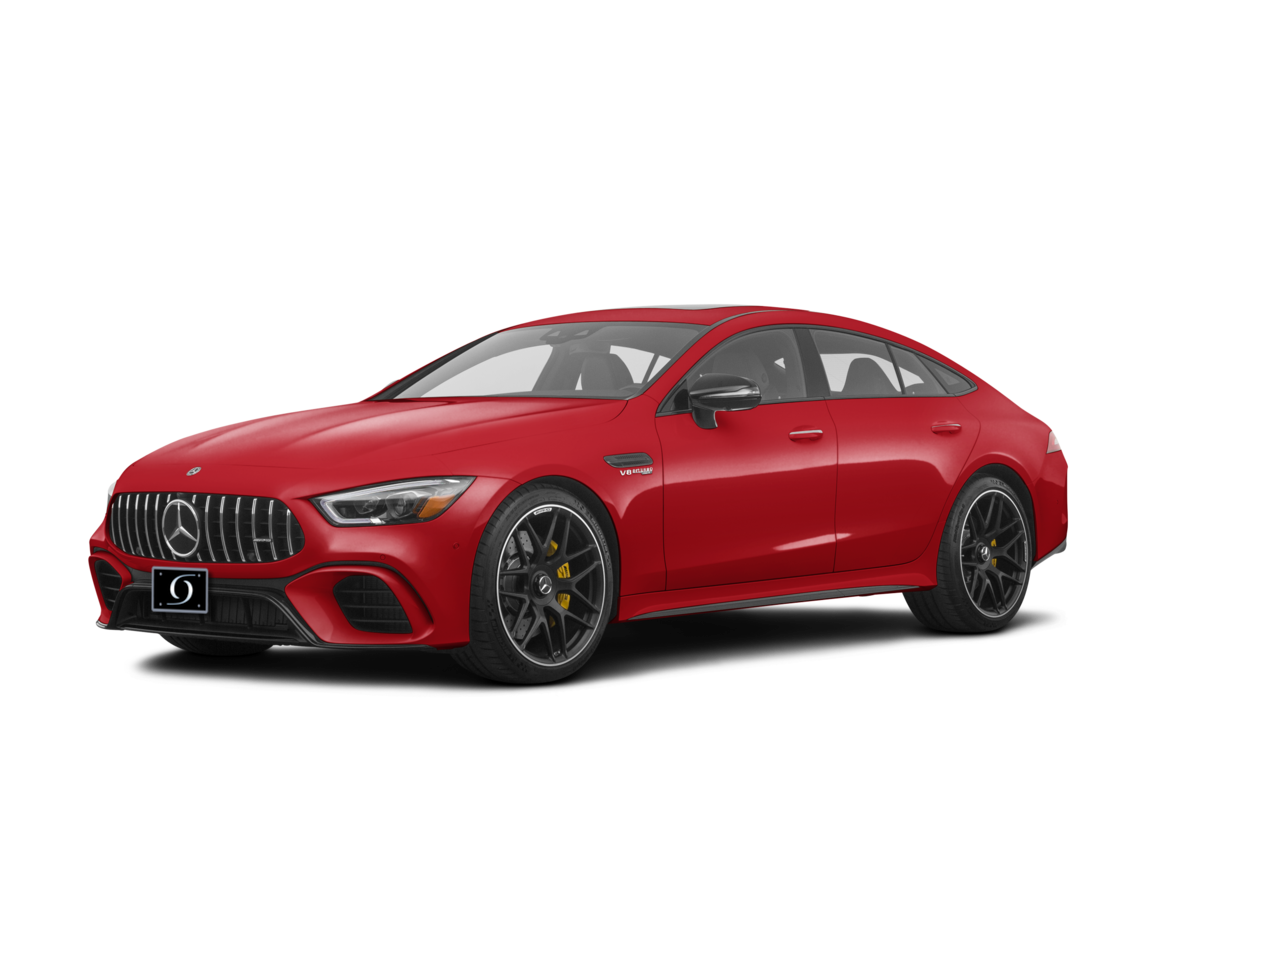 2021 Mercedes AMG GT 63 S 4-Door Coupe Lease Deal